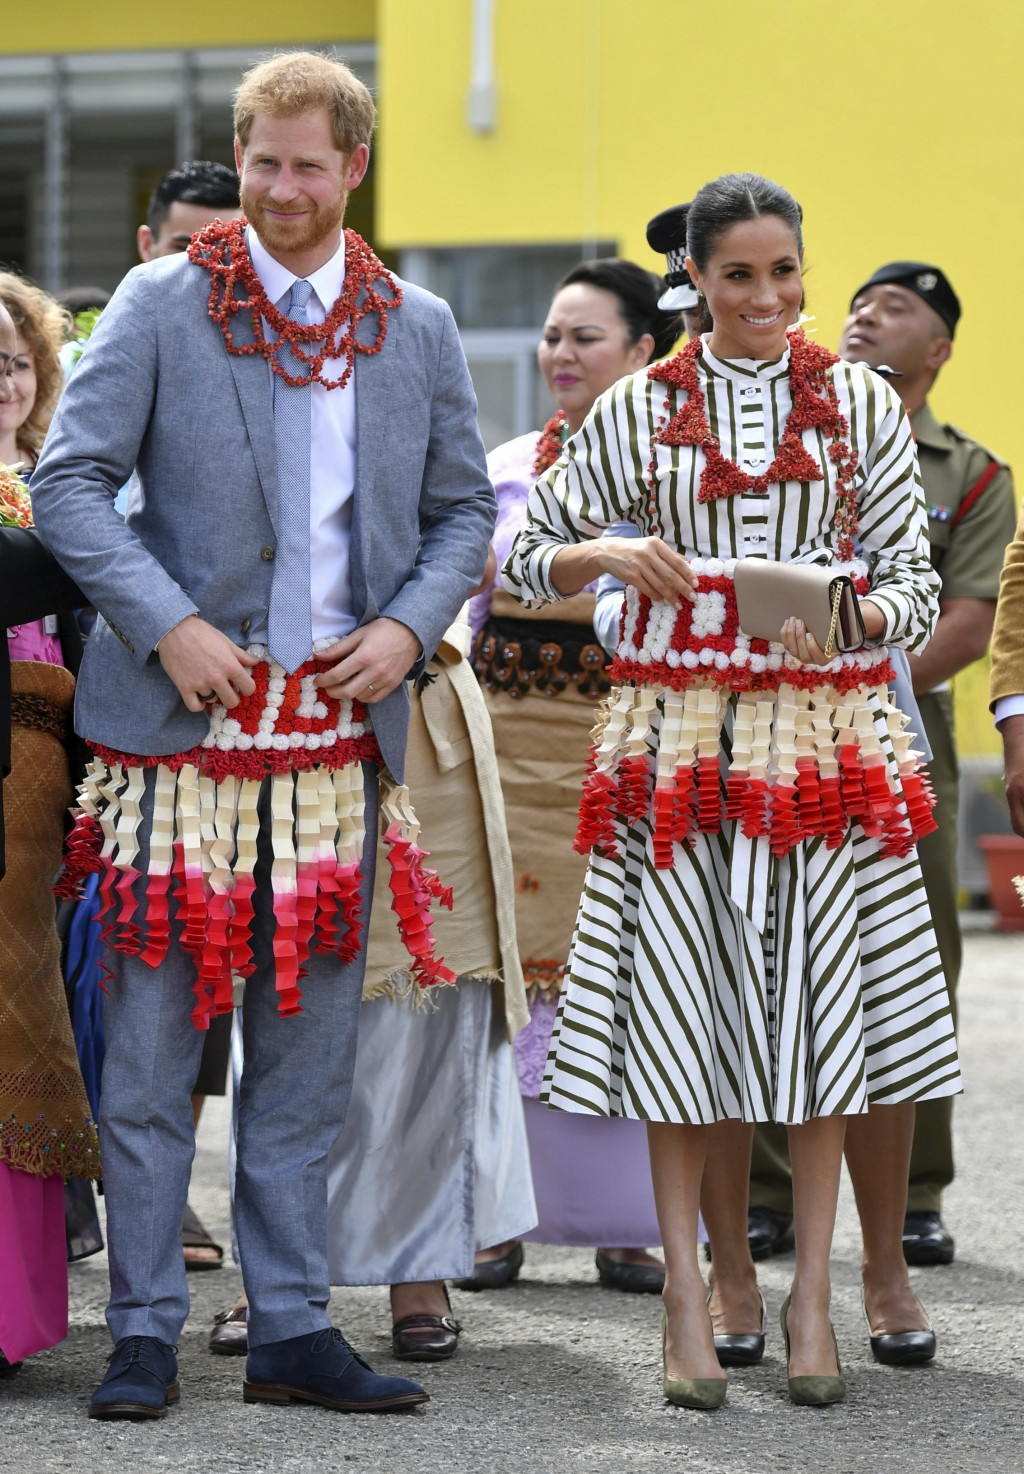 FILE - In this Friday, Oct. 26, 2018 file photo, Britain's Prince Harry and Meghan, the Duchess of Sussex visit an exhibition of Tongan handicrafts, m